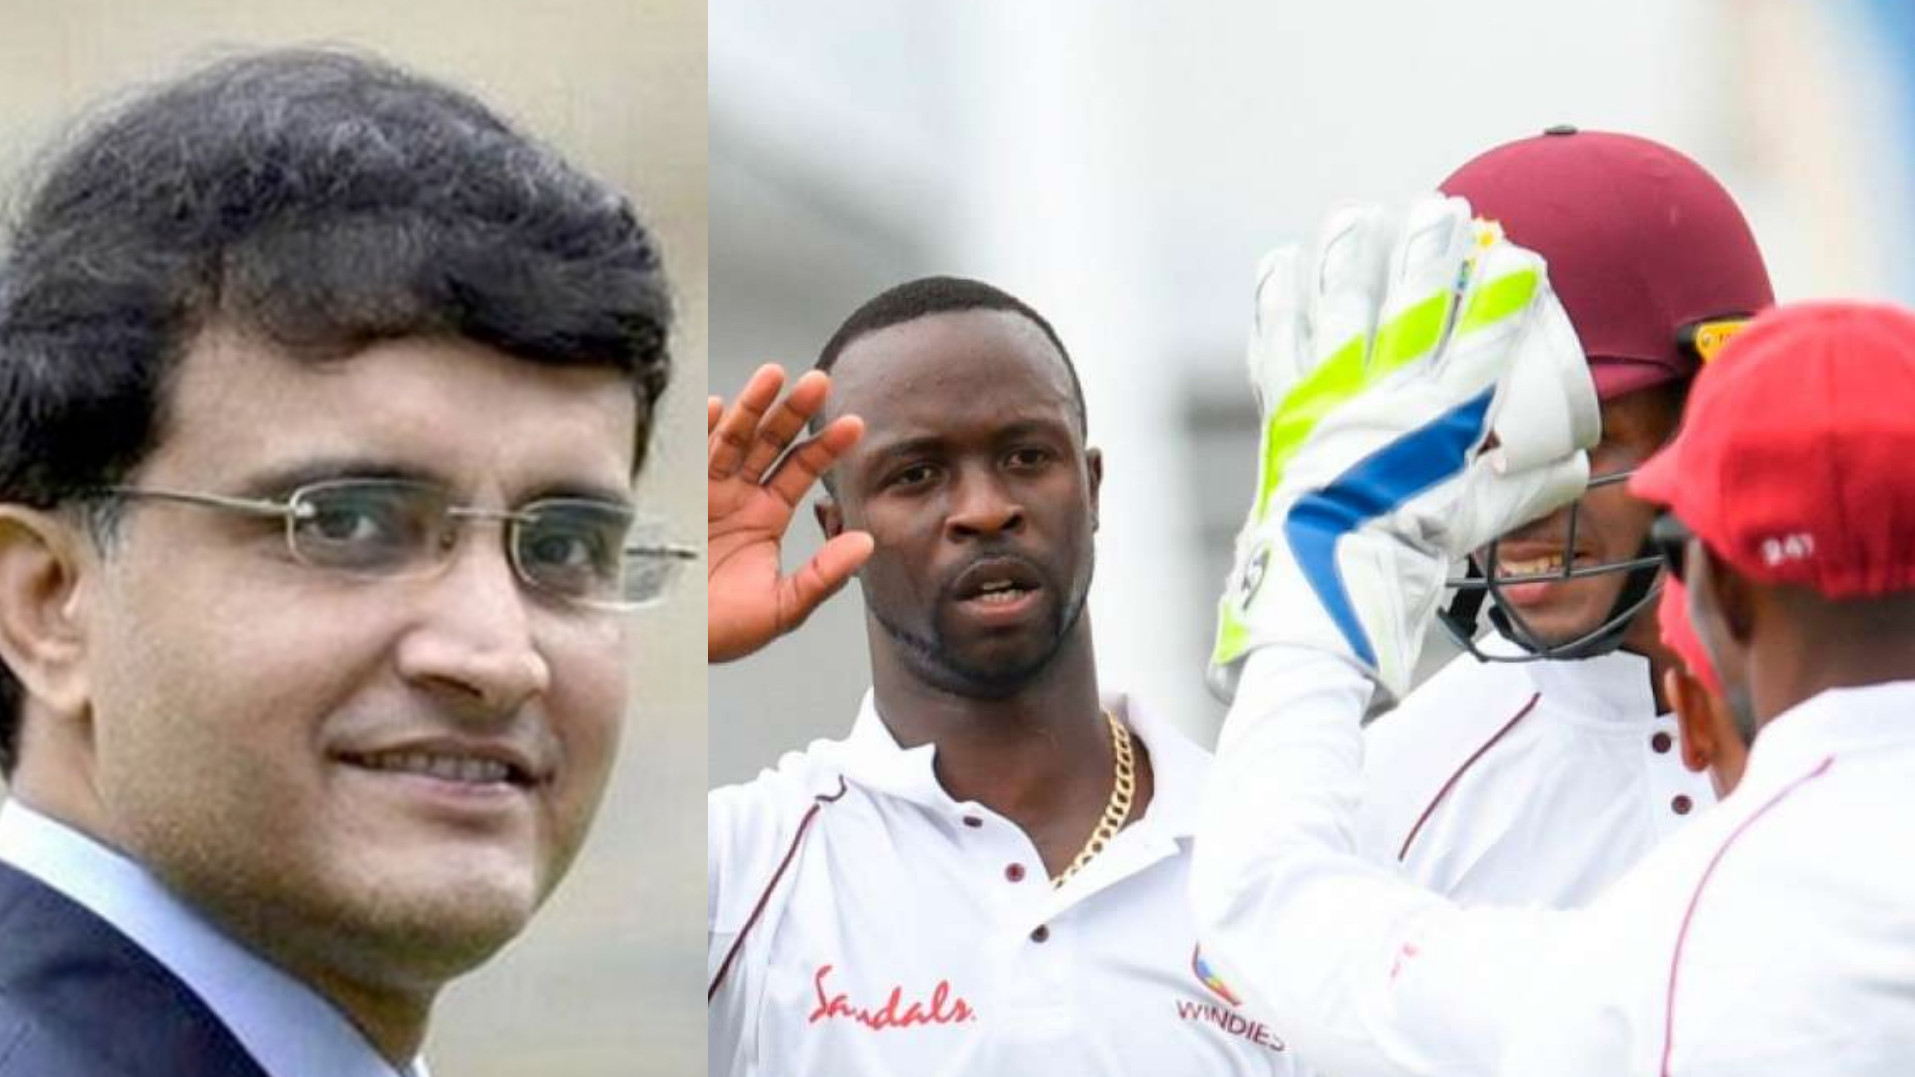 IND v WI 2018: Sourav Ganguly says work cut out for Windies in the Test series